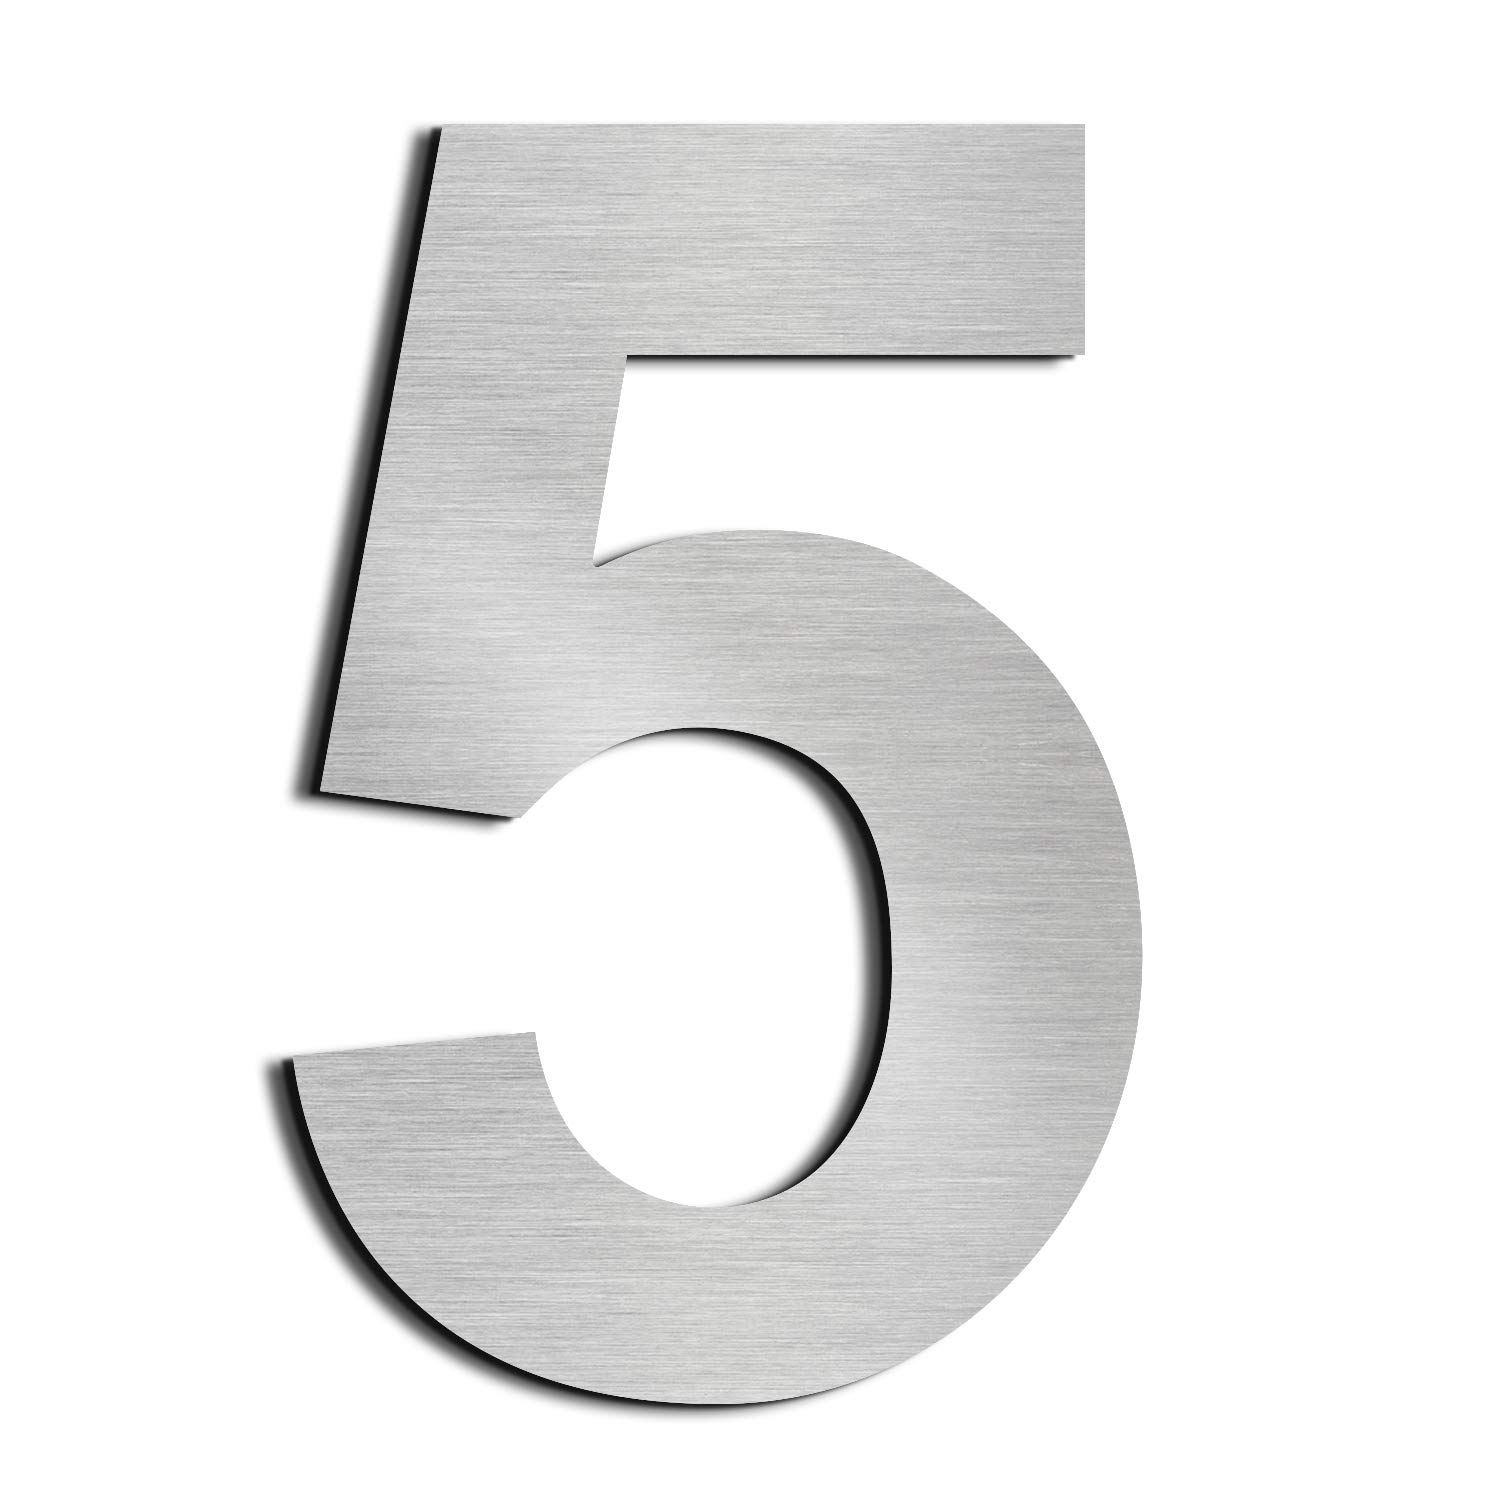 nanly House Number 1 One Made of Solid 304 Stainless Steel Floating Appearance 20.5cm 8 in Easy to Install (1)